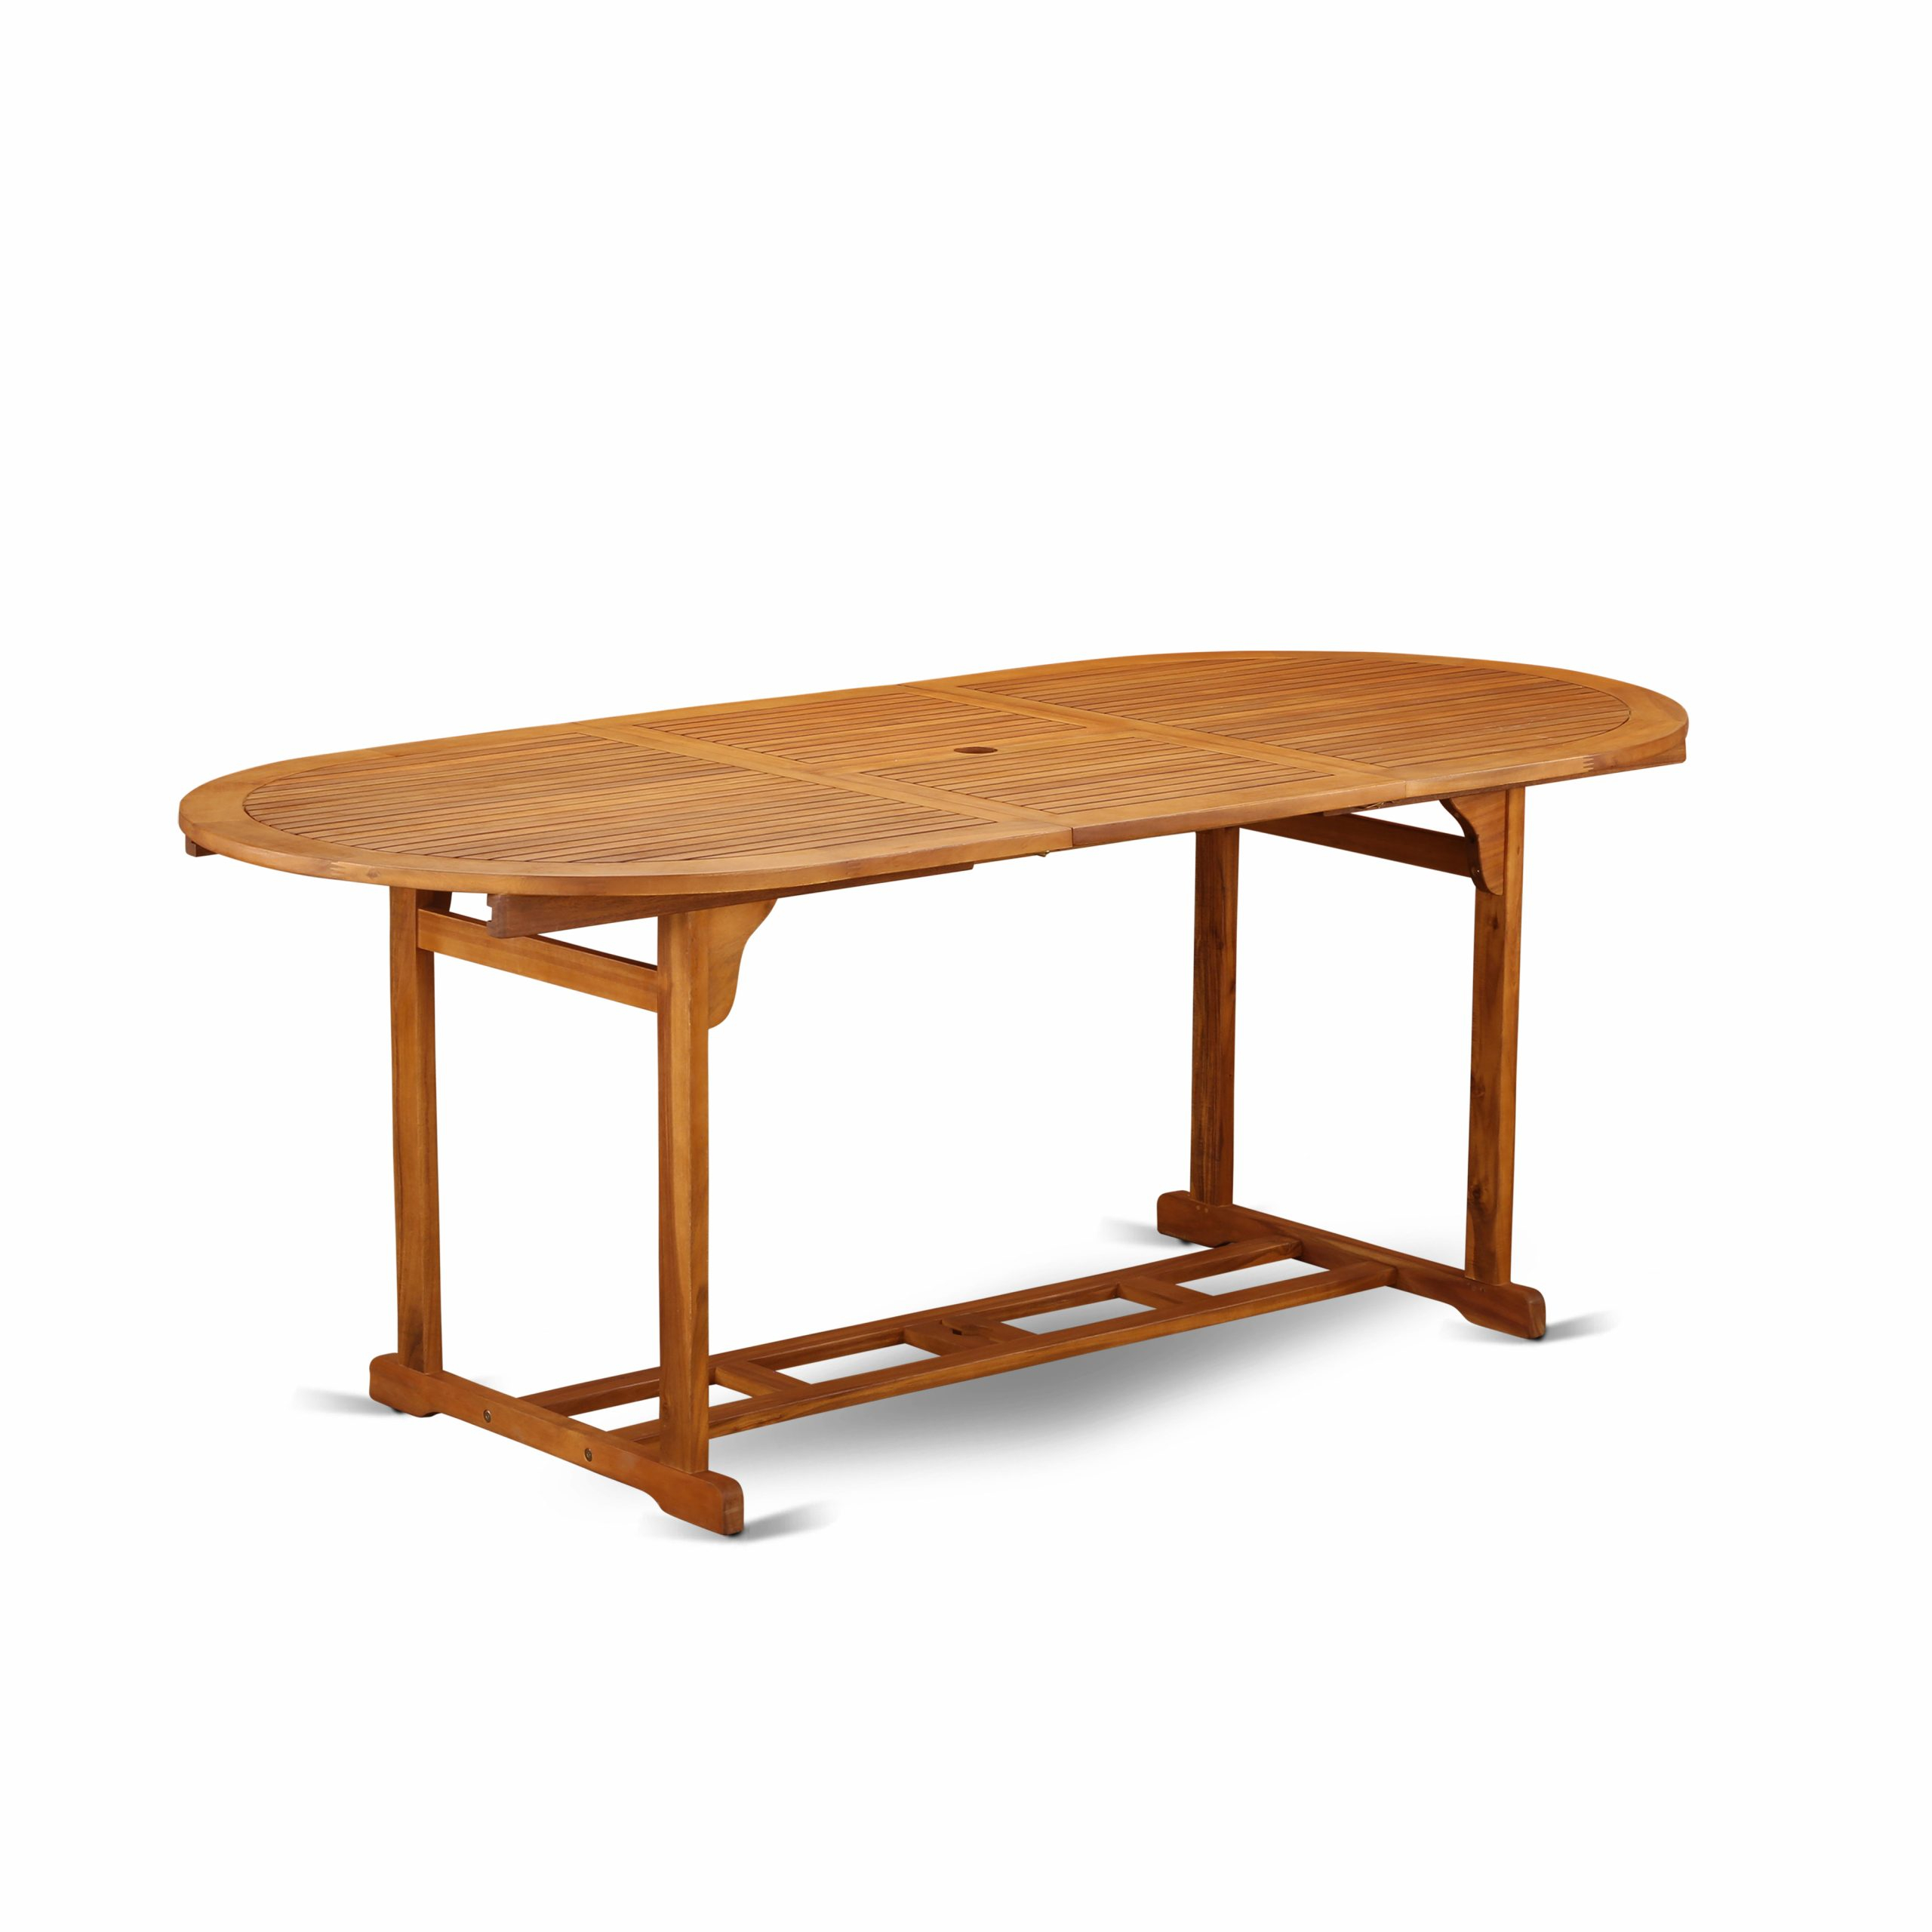 Bbstxna Oval Terrace Acacia Solid Wood Dining Table In Current Folcroft Acacia Solid Wood Dining Tables (View 2 of 15)